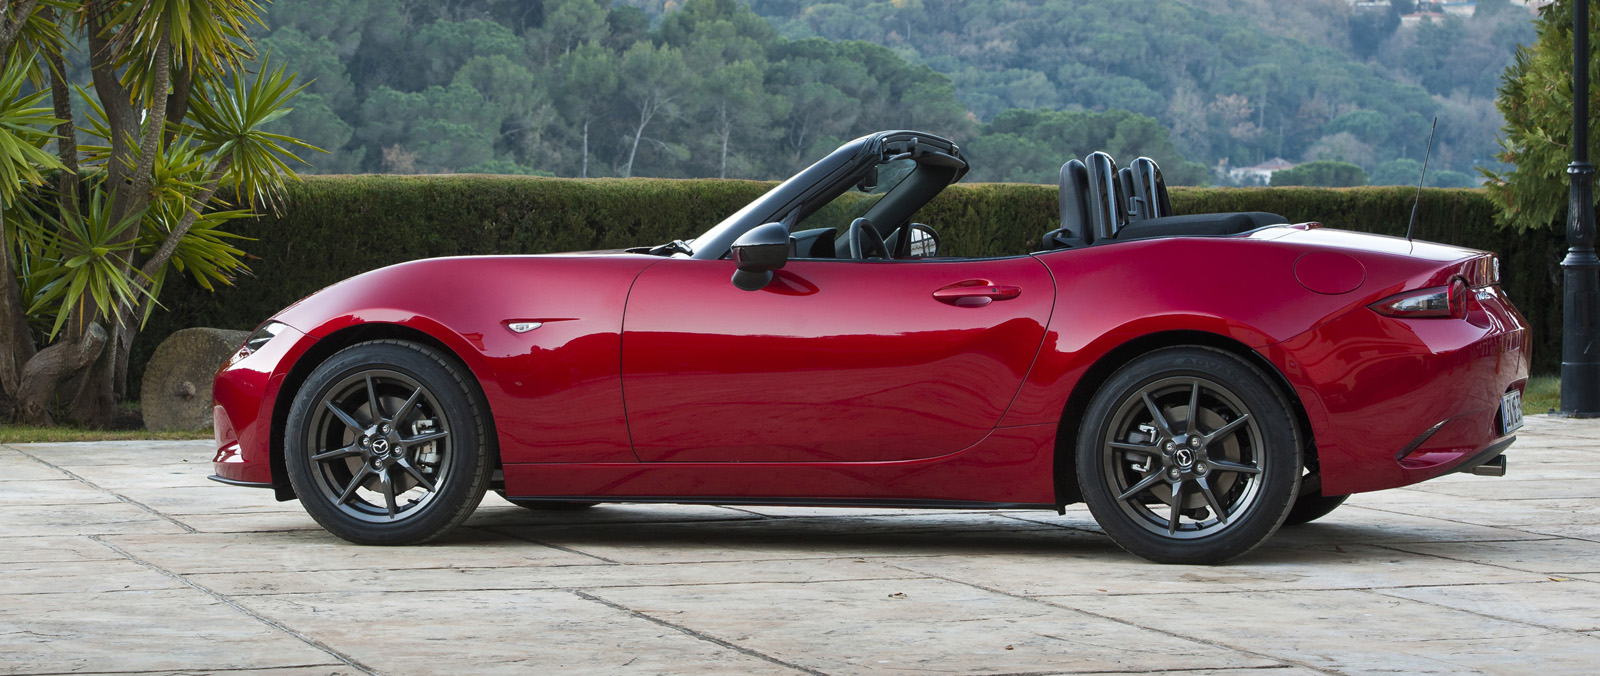 Mazda MX-5 ND is de open tweezits sportauto